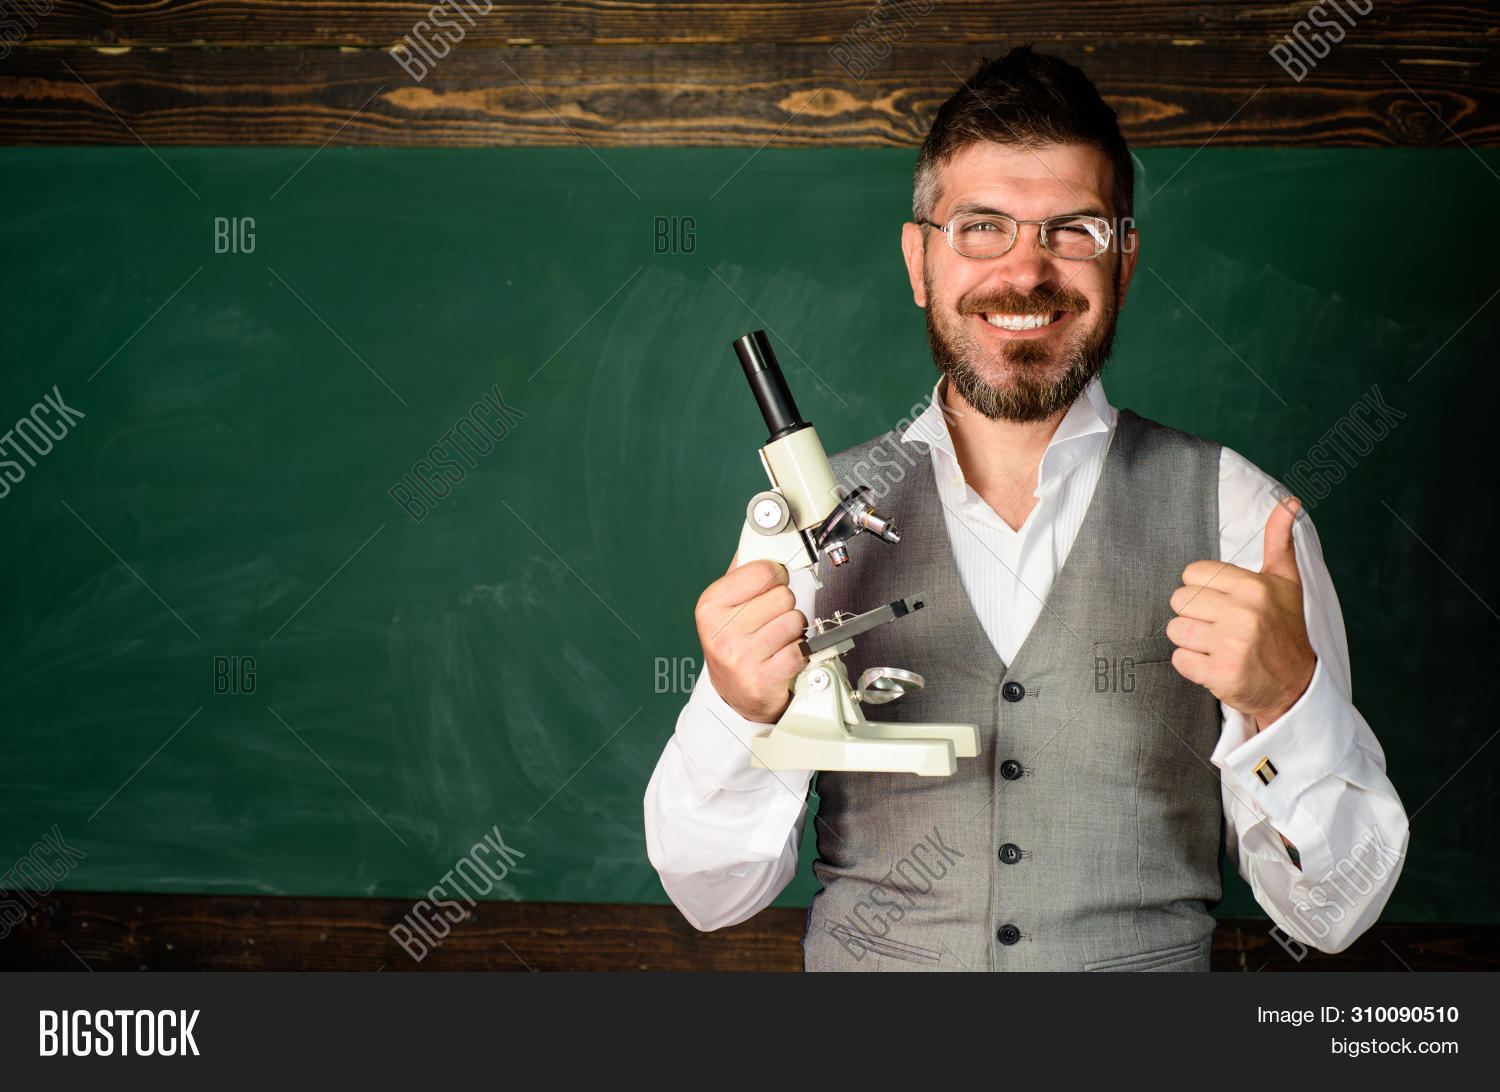 Teacher In Classroom At Elementary School. Teacher Giving Lesson To Students. Confident Male Teacher